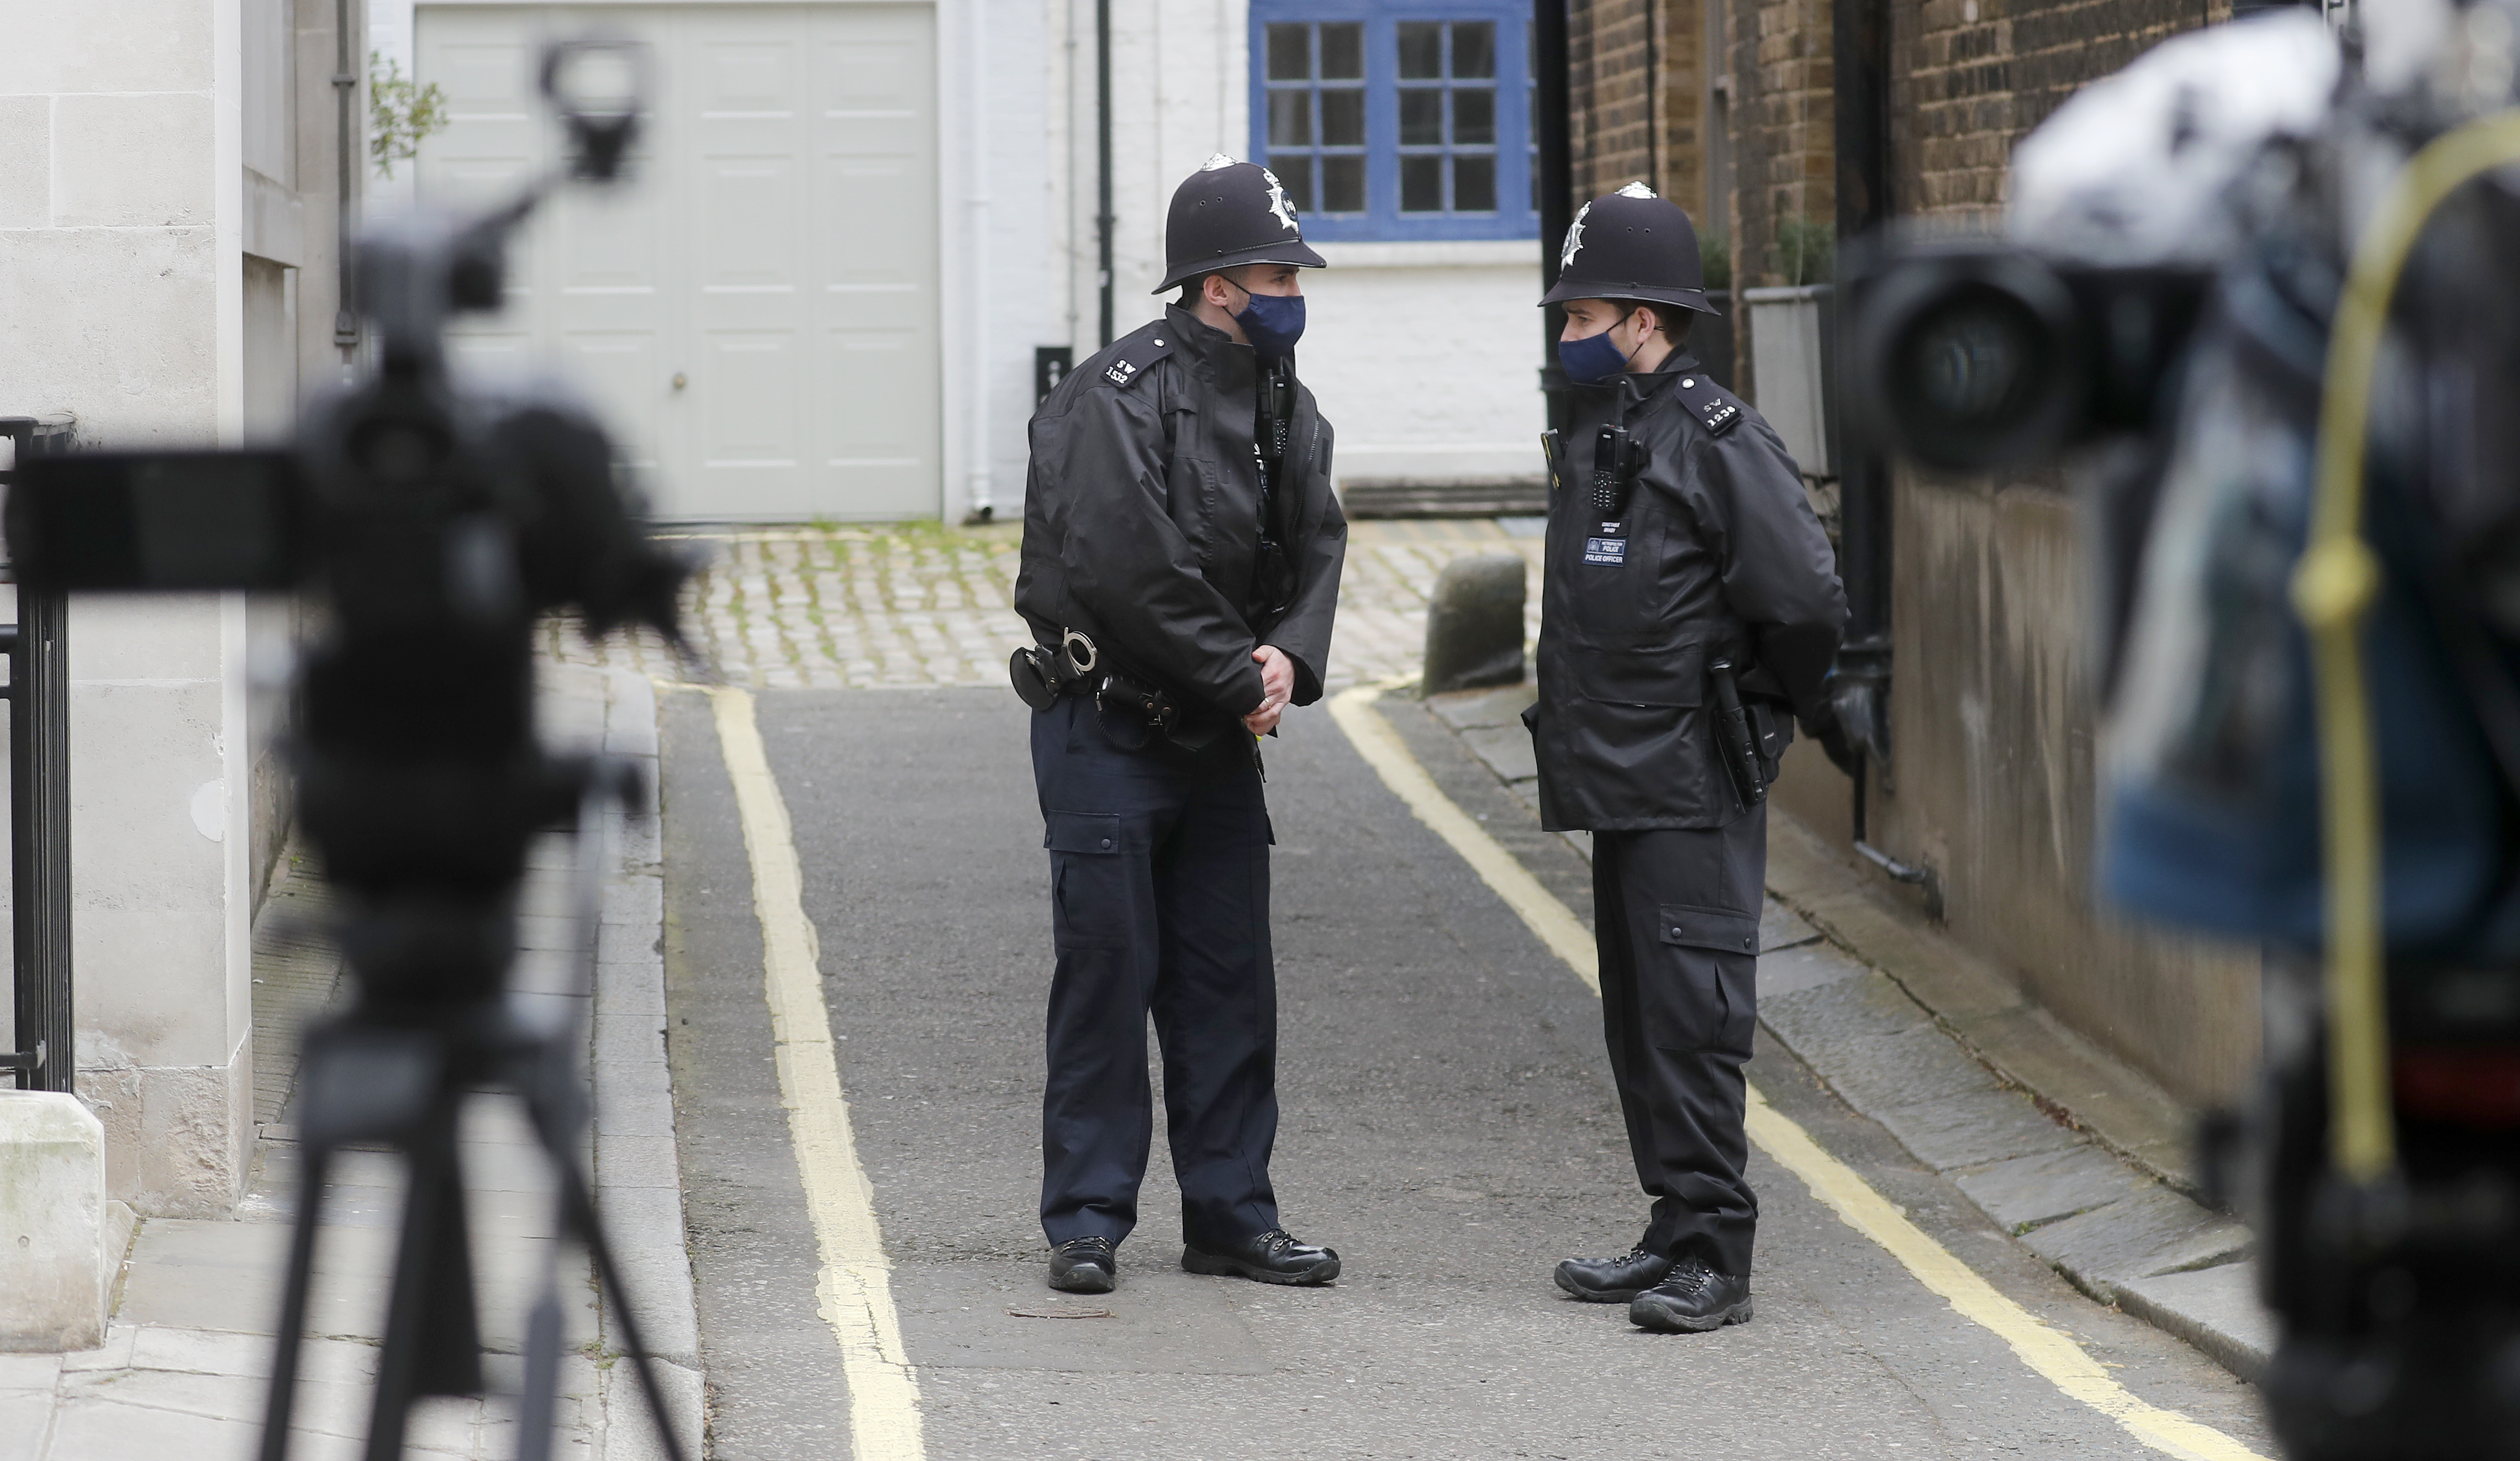 <p>Police officers stand outside King Edward VII hospital where Britain's Prince Philip is receiving treatment in London, Thursday March 11, 2021. The 99-year-old husband of Queen Elizabeth II remains hospitalized after a heart procedure. (AP Photo/Frank Augstein)</p>